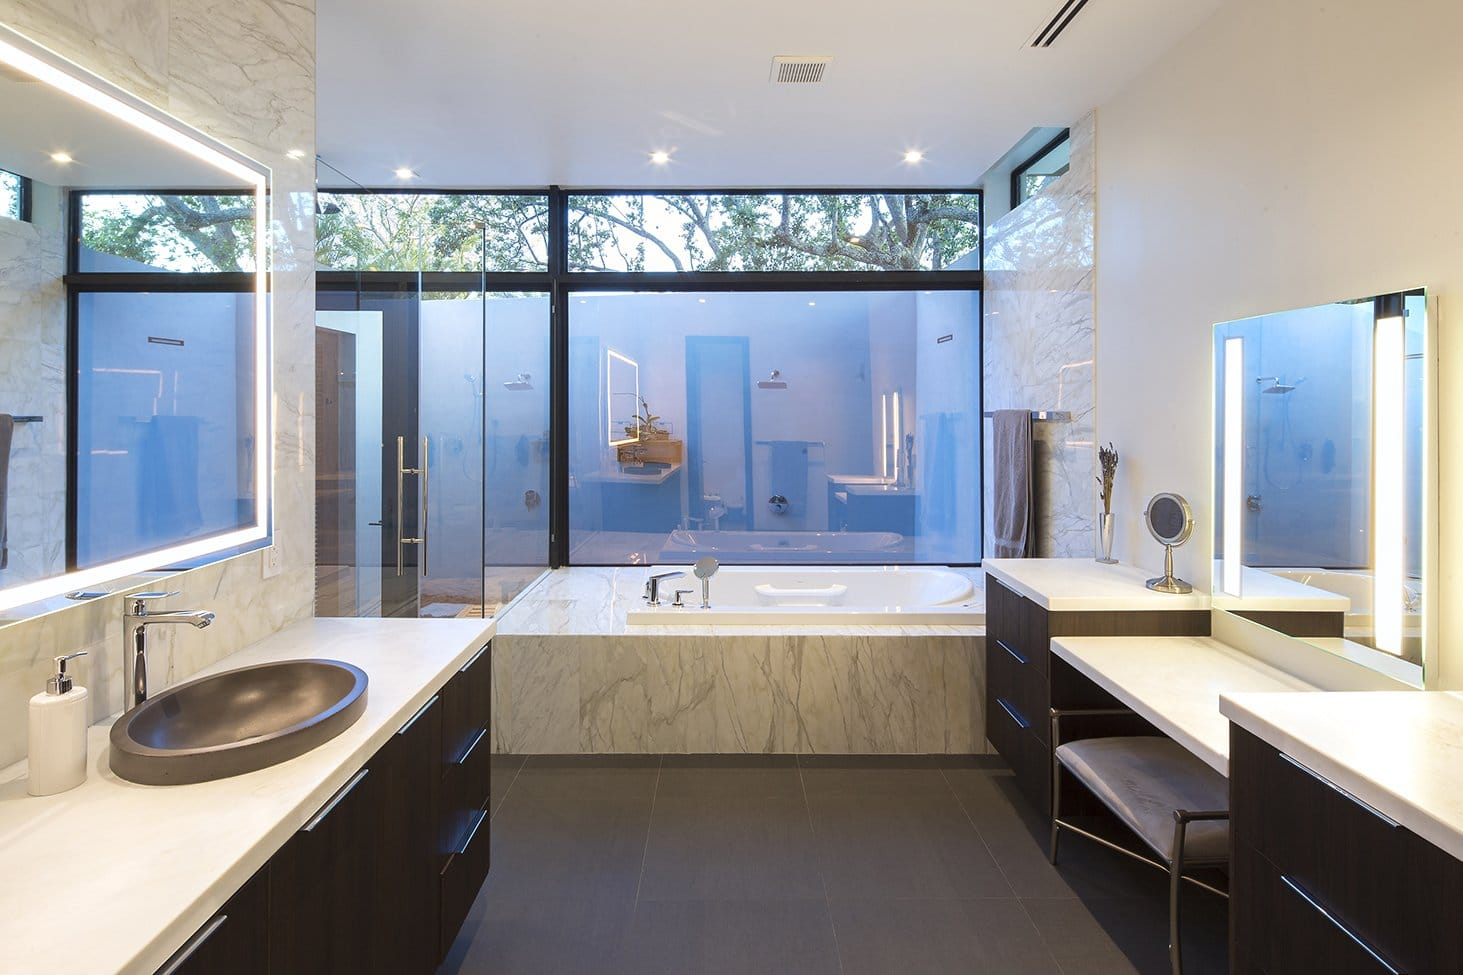 Bathroom Front View Interior Design project in Pinecrest, Florida